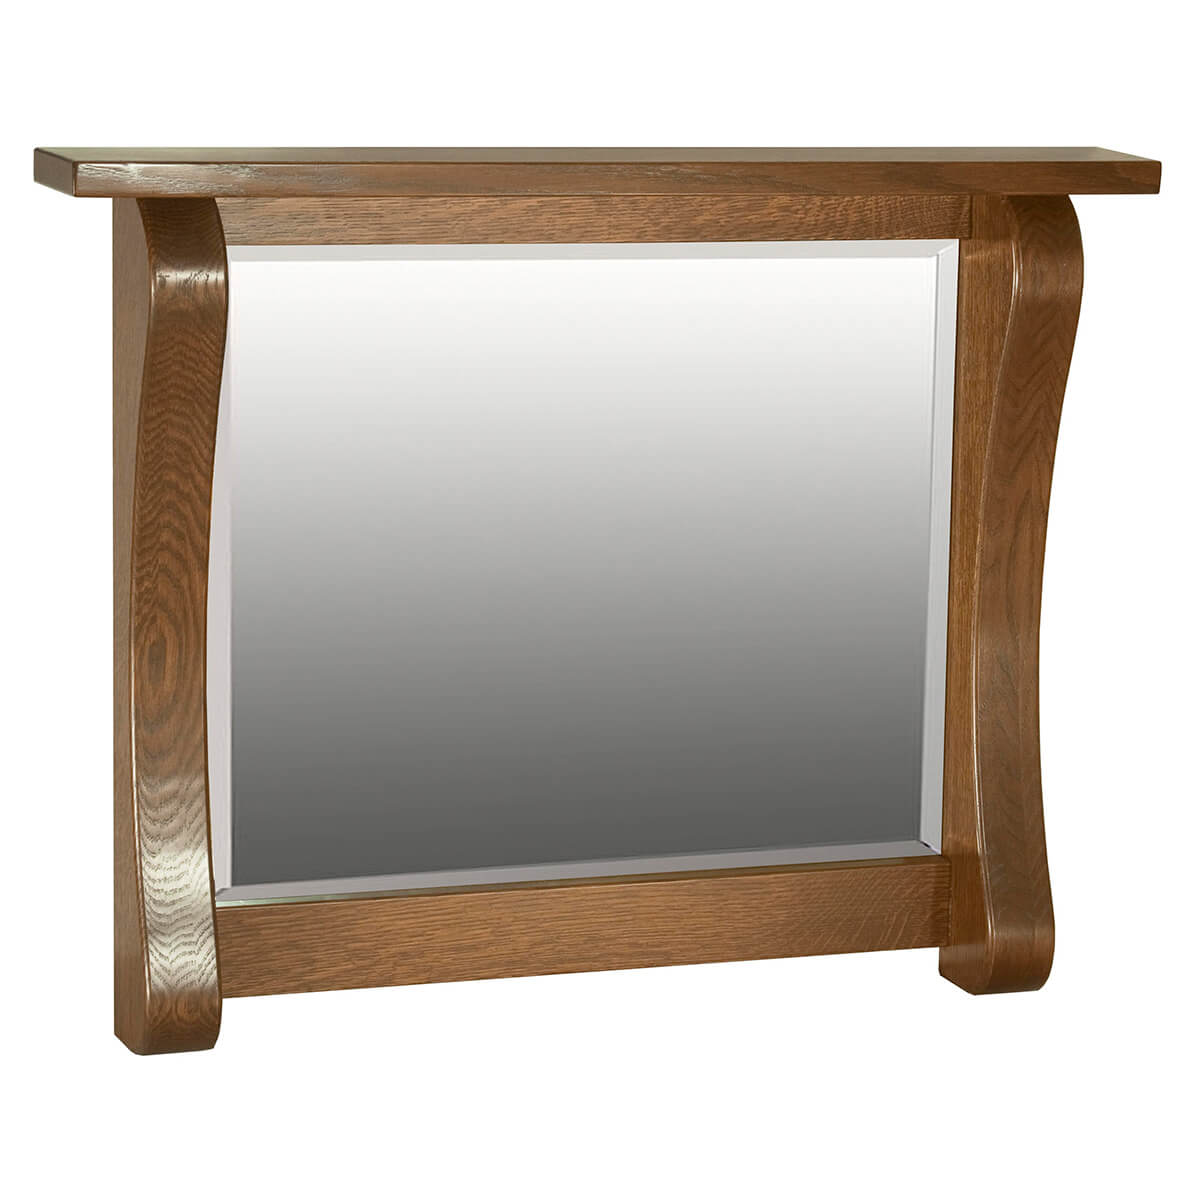 br wall mirrors